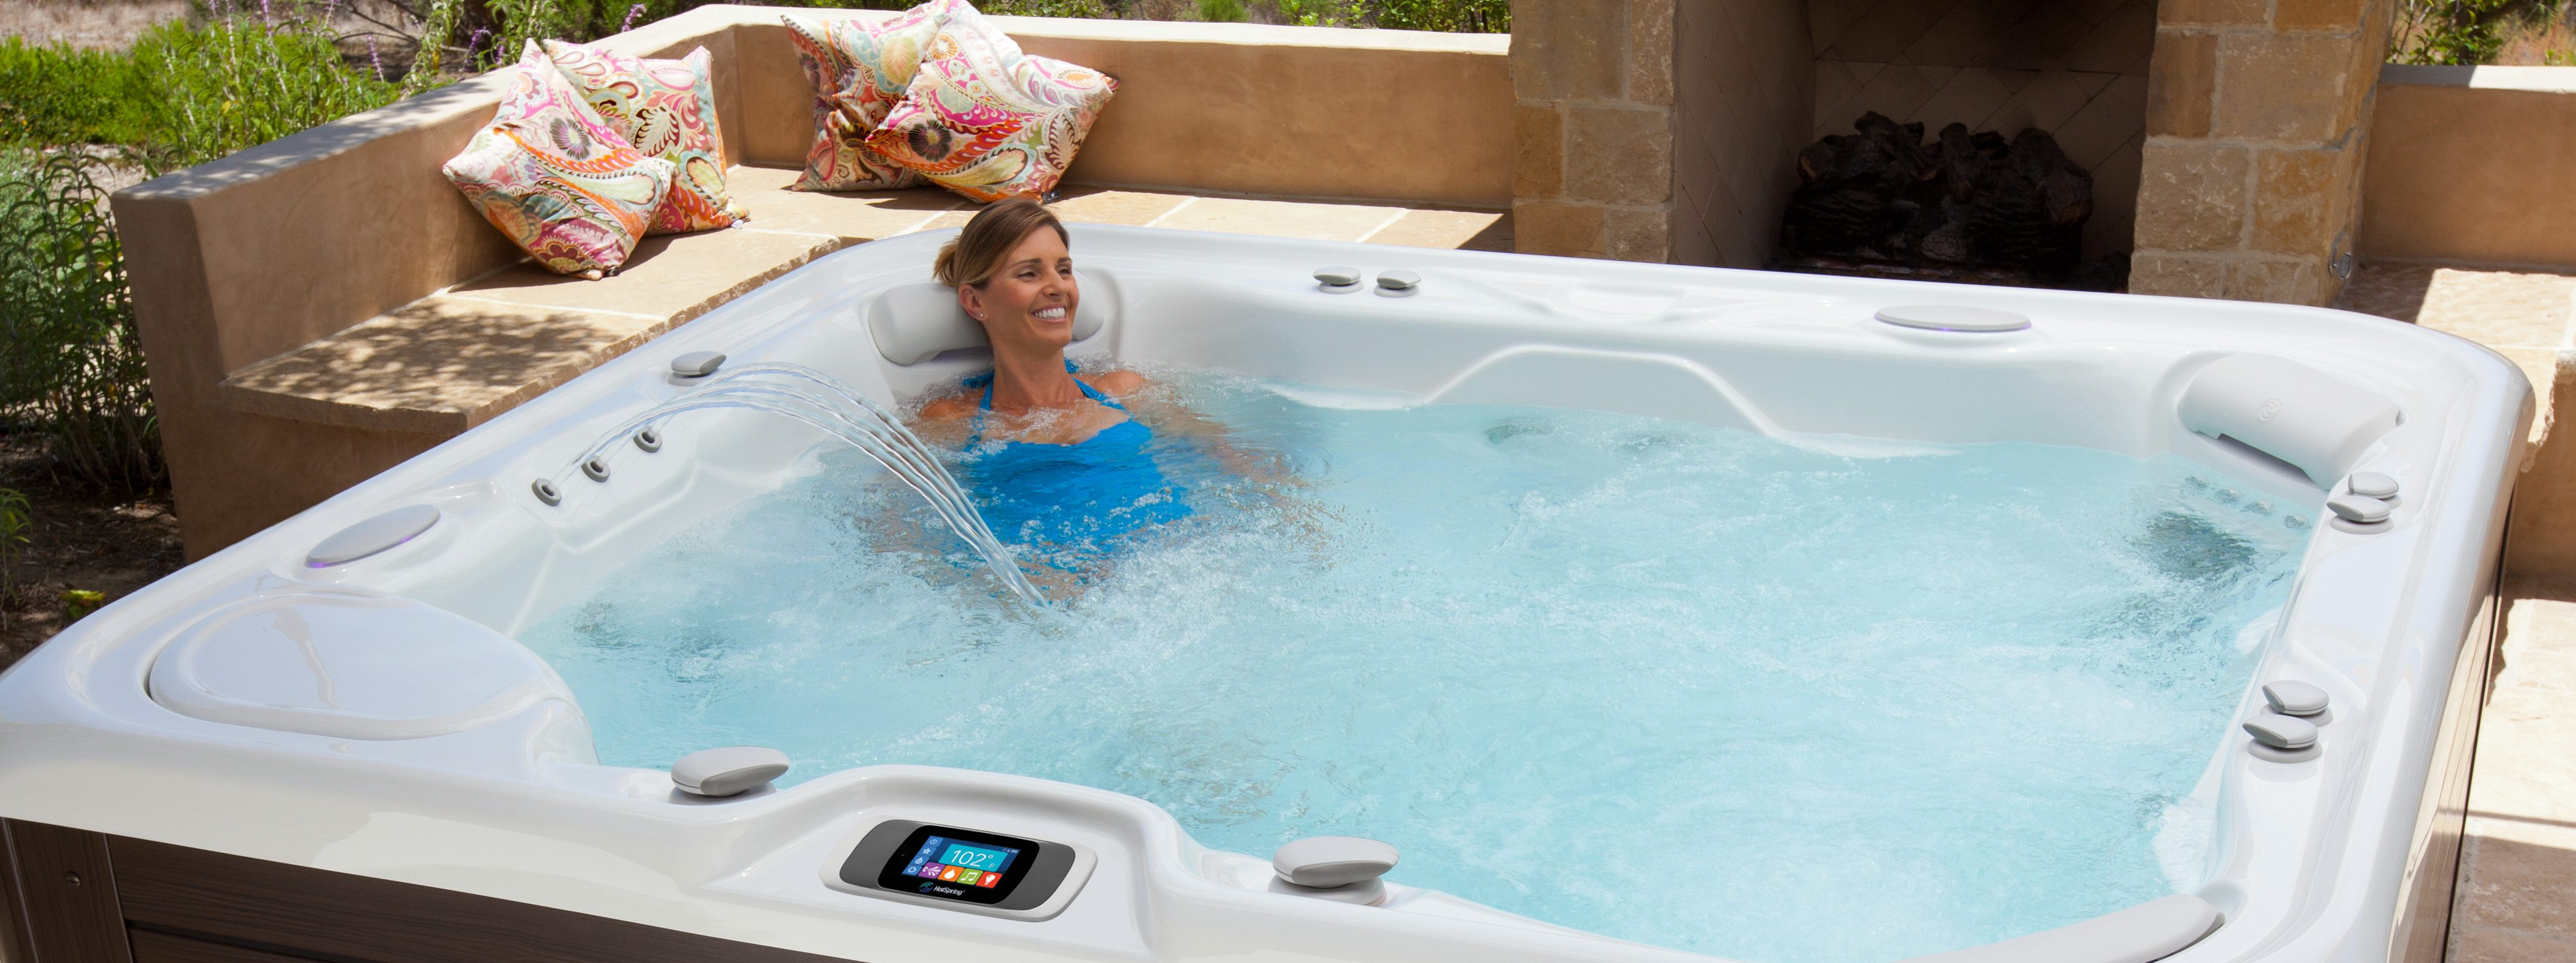 3 Hot Tub Accessories That Ain't Just for Looks